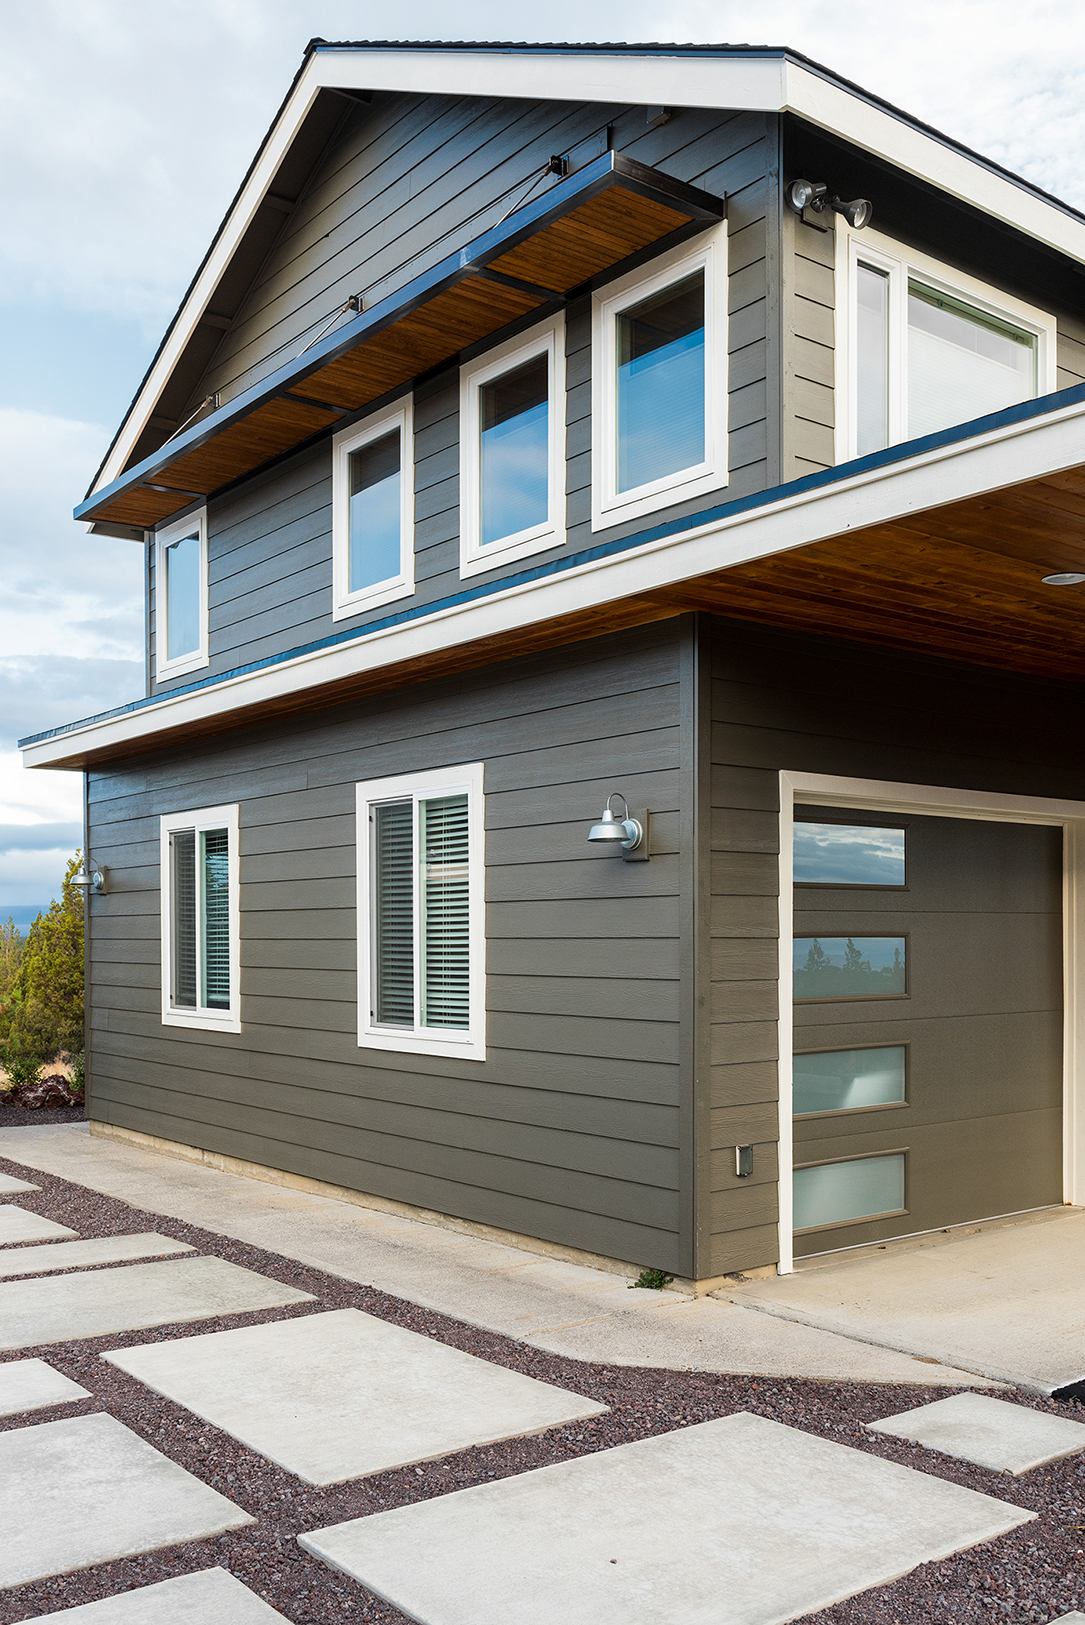 pgc-building-design-bend-oregon-parno-rgb-1625px-PGC-8346